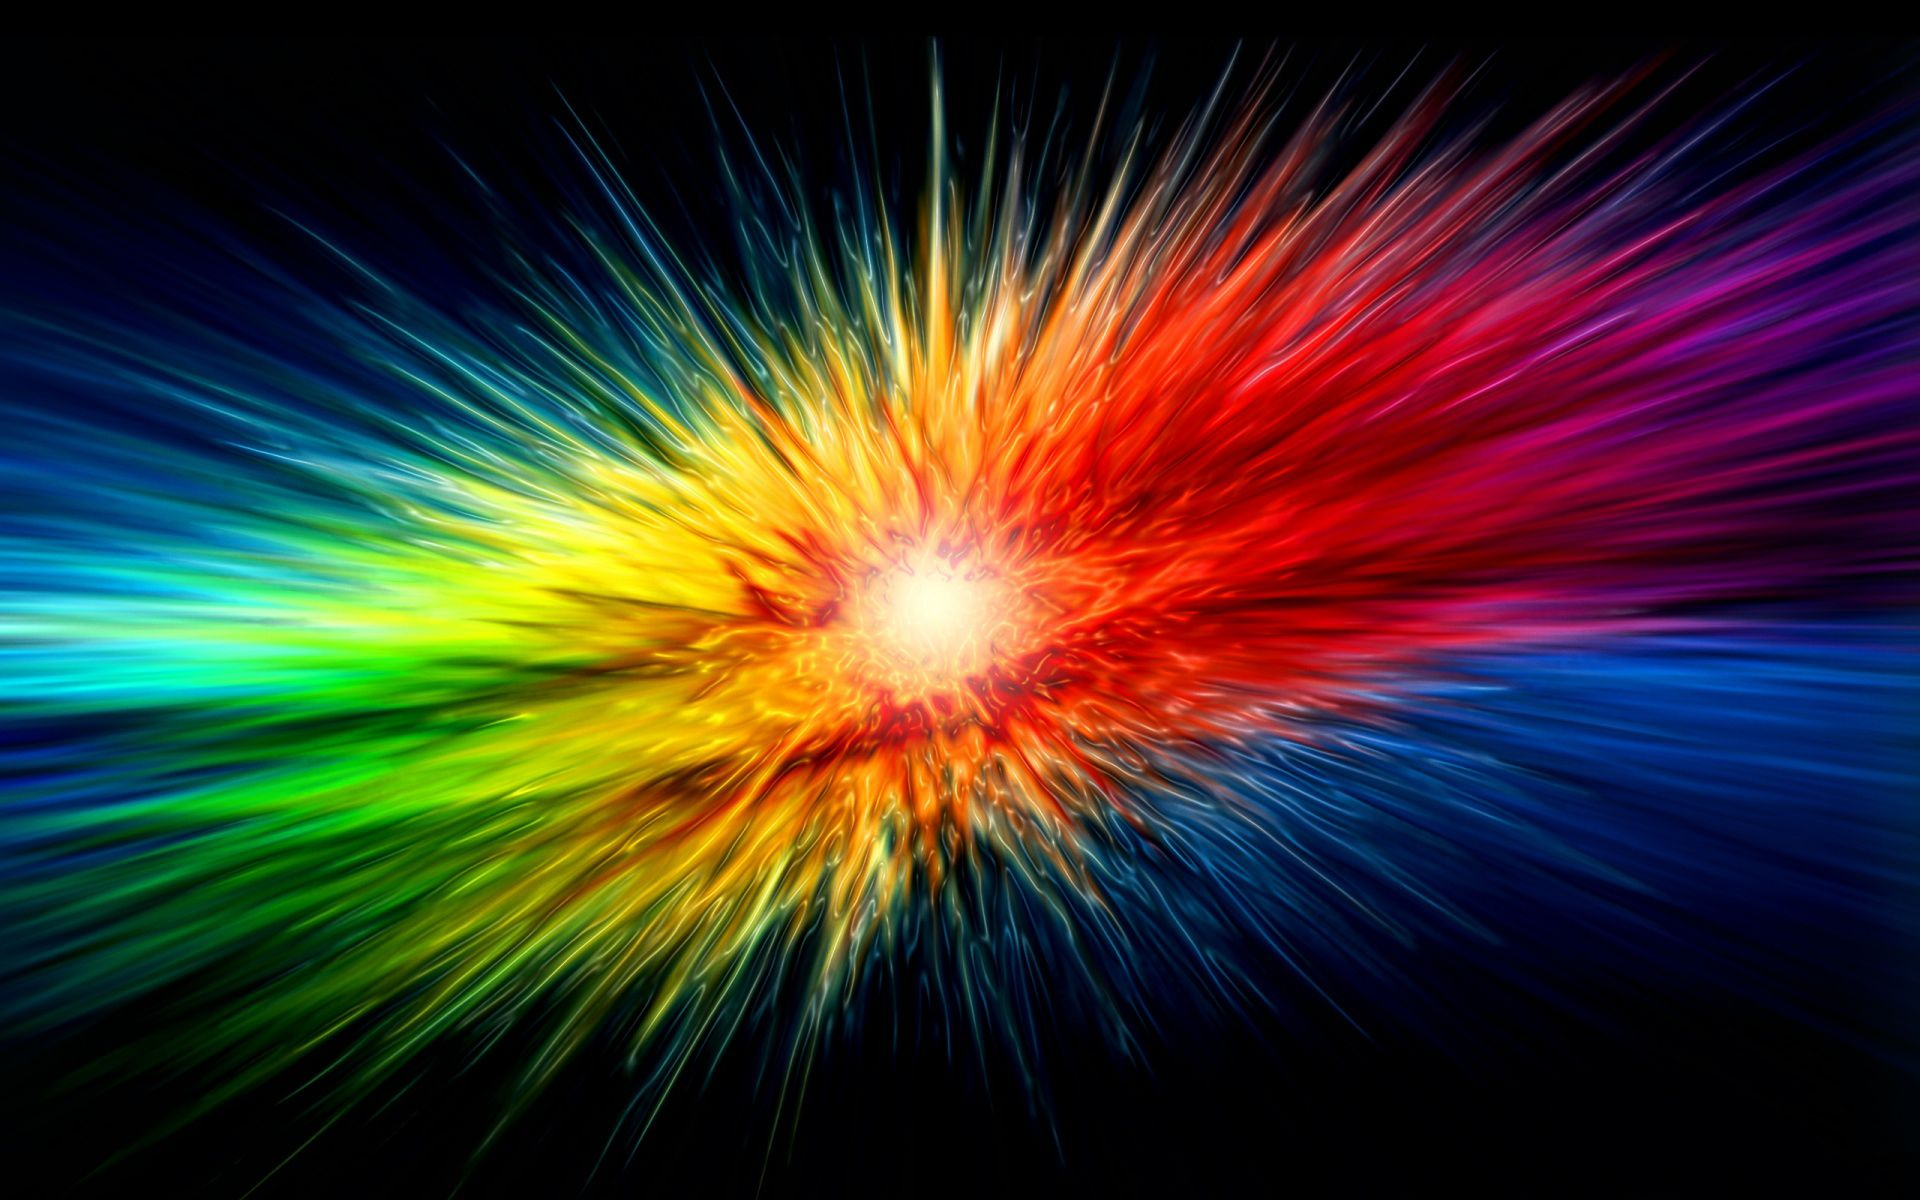 Abstract Wallpapers Background Wallpaper Free Desktop Wallpaper Backgrounds Wallpaper Gallery Rainbow Wallpaper